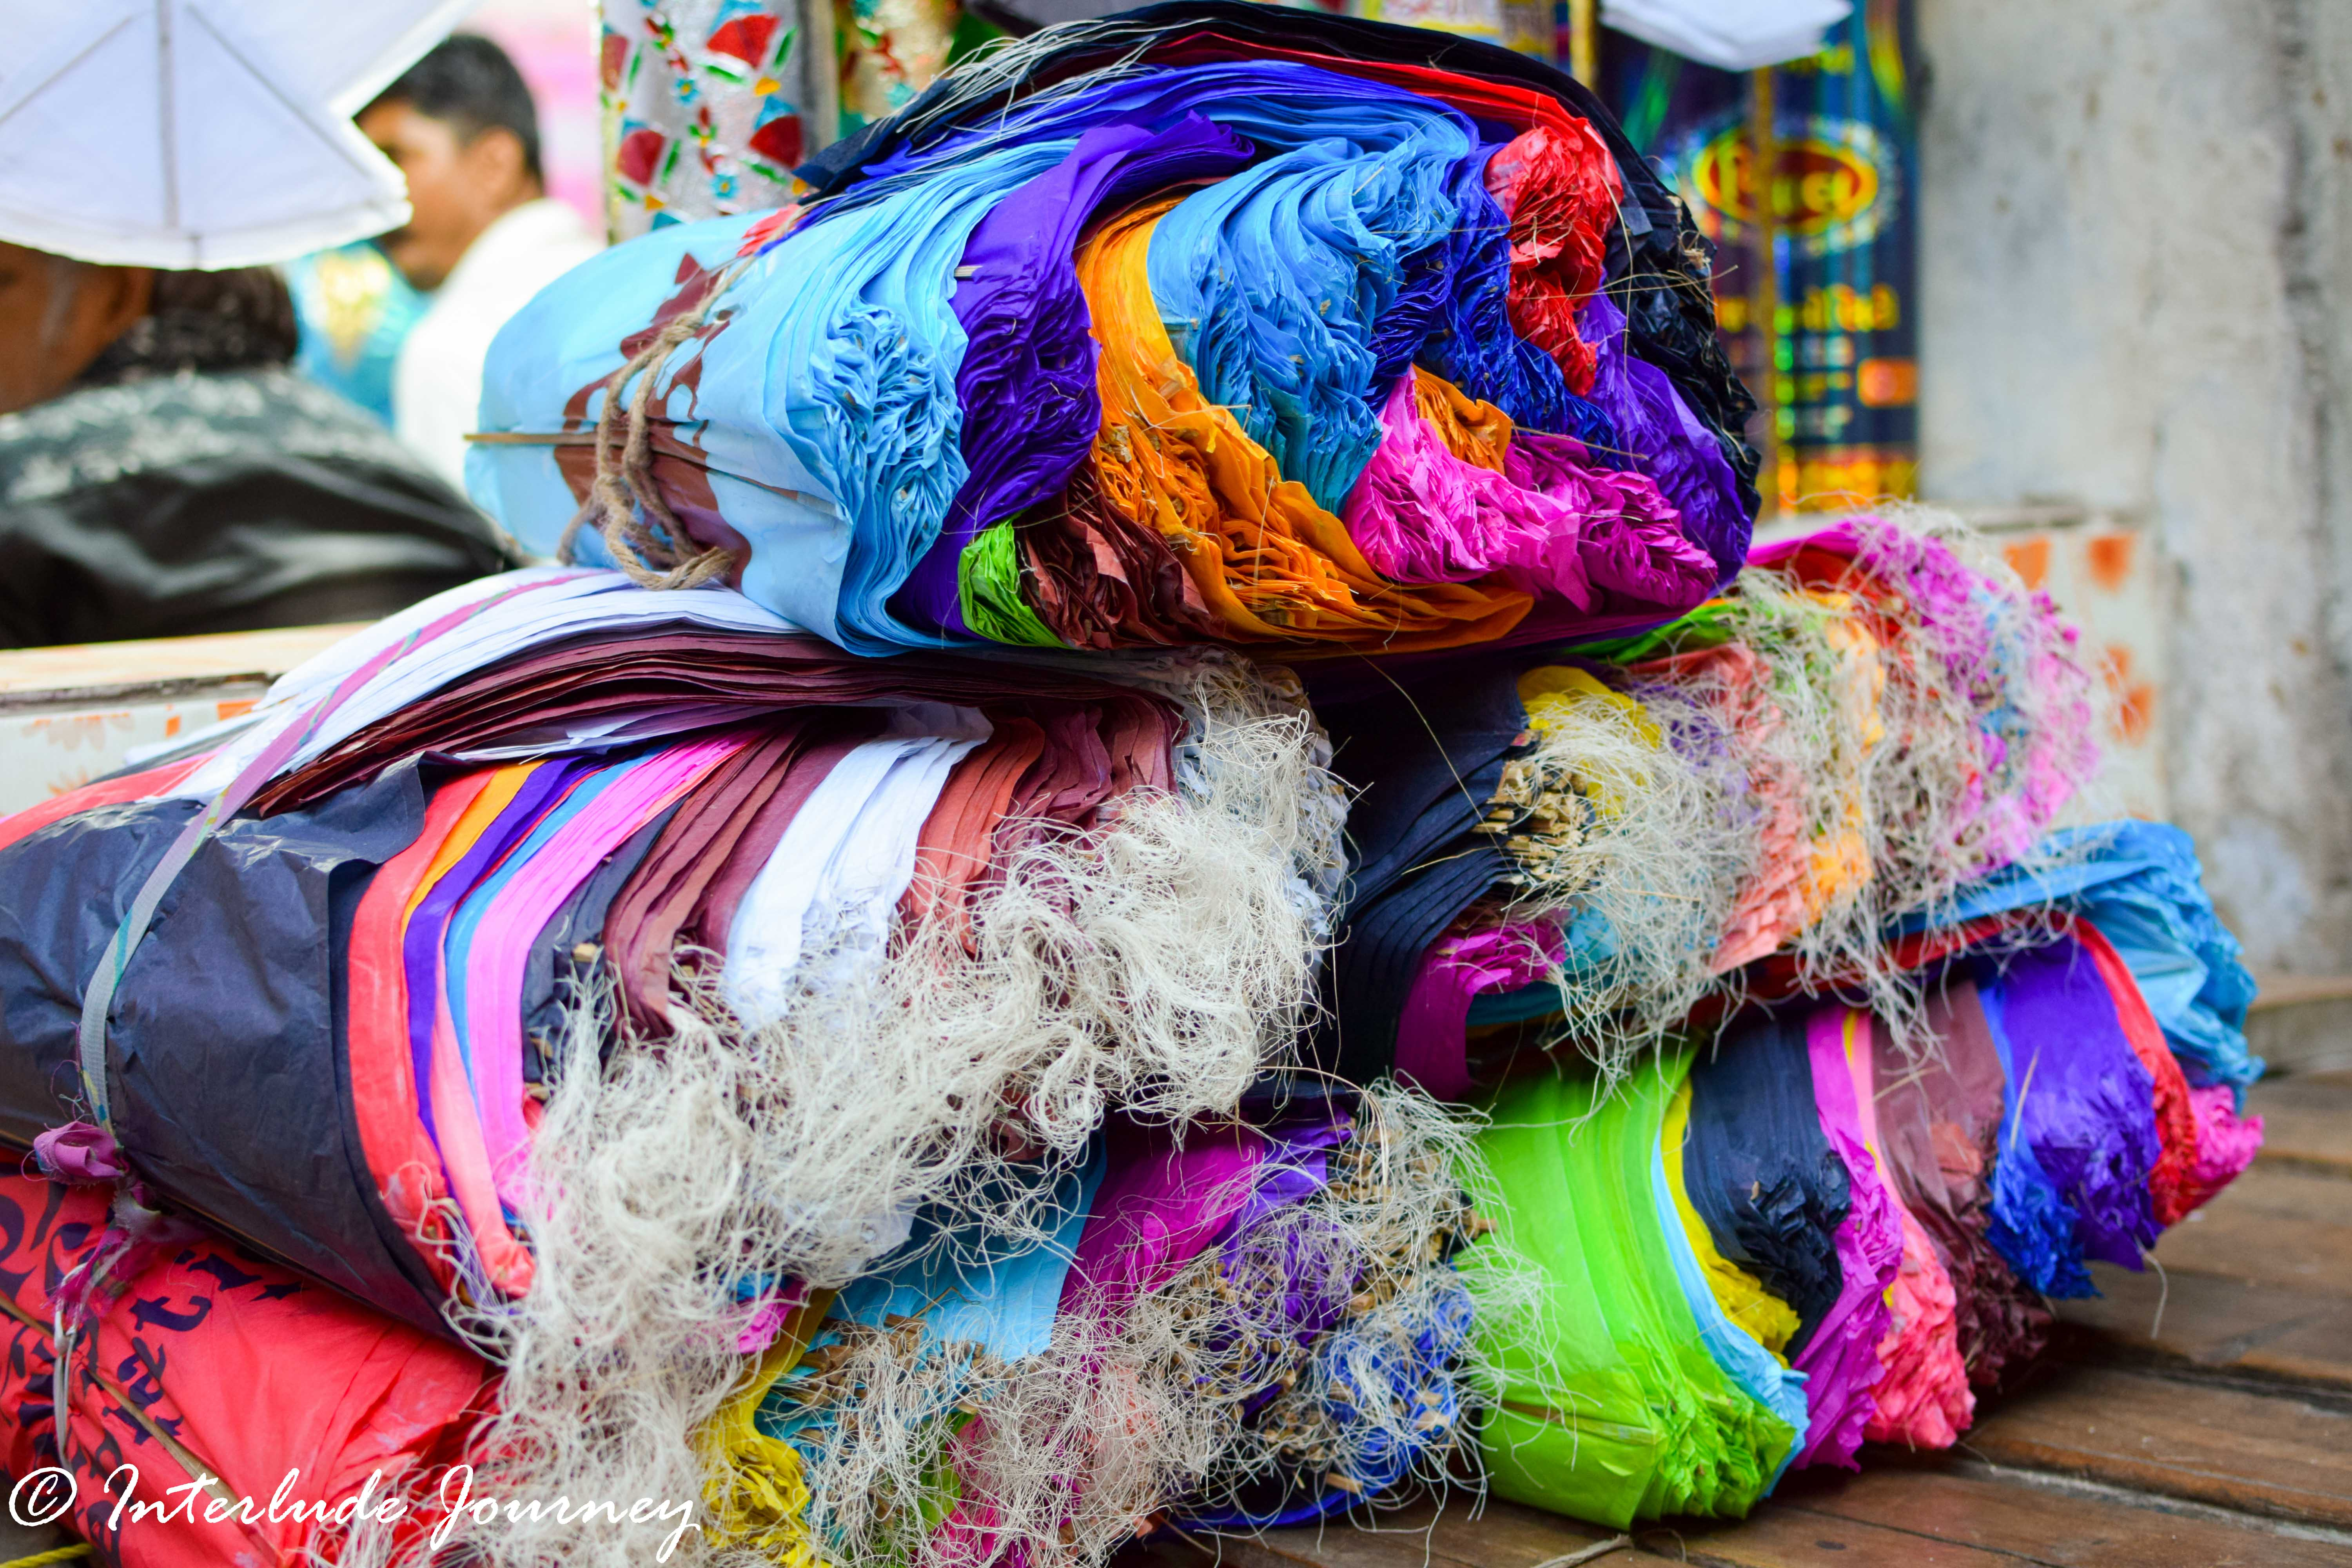 Raw material used for making kites